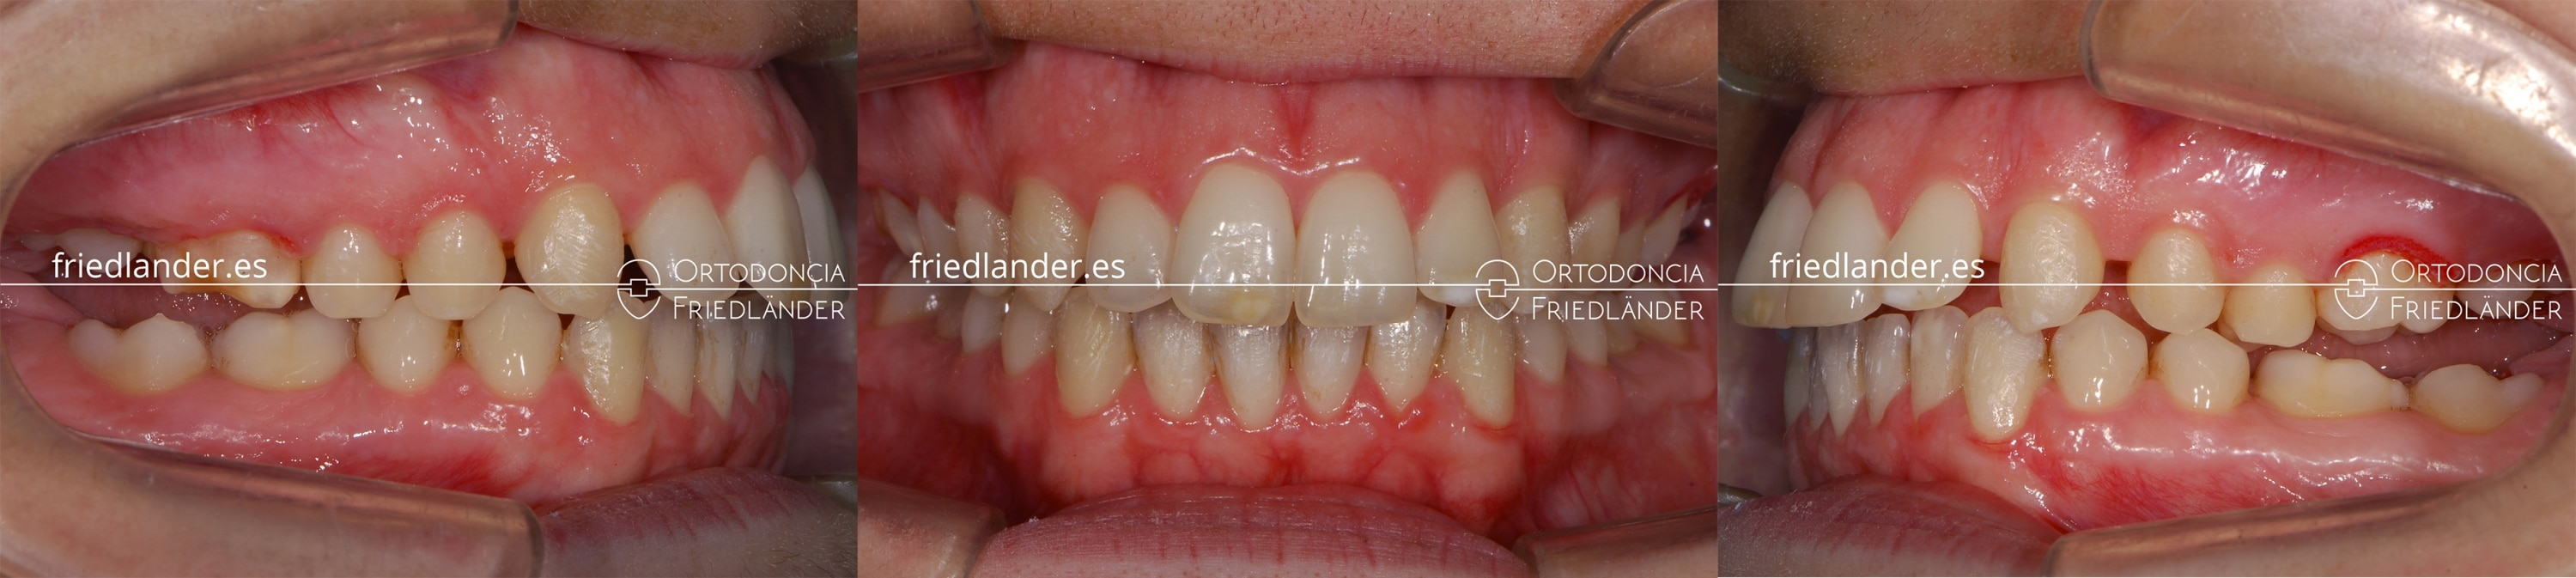 Ortodoncia Friedlander Barcelona tratamiento real invisalign transparente invisible